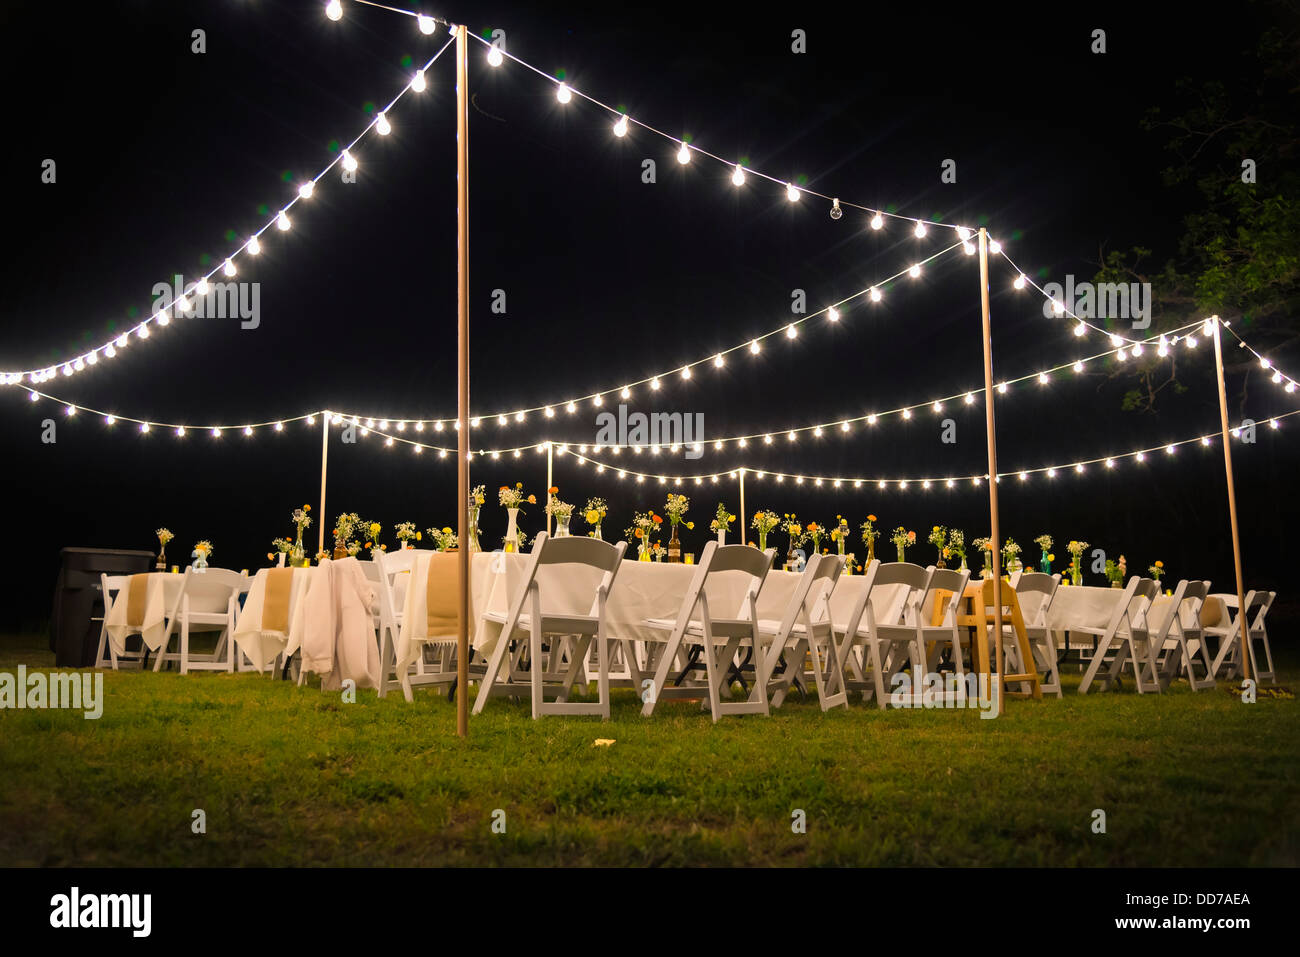 Outdoor Party Lights Usa Texas Outdoor Wedding Reception With Party Lights At Night